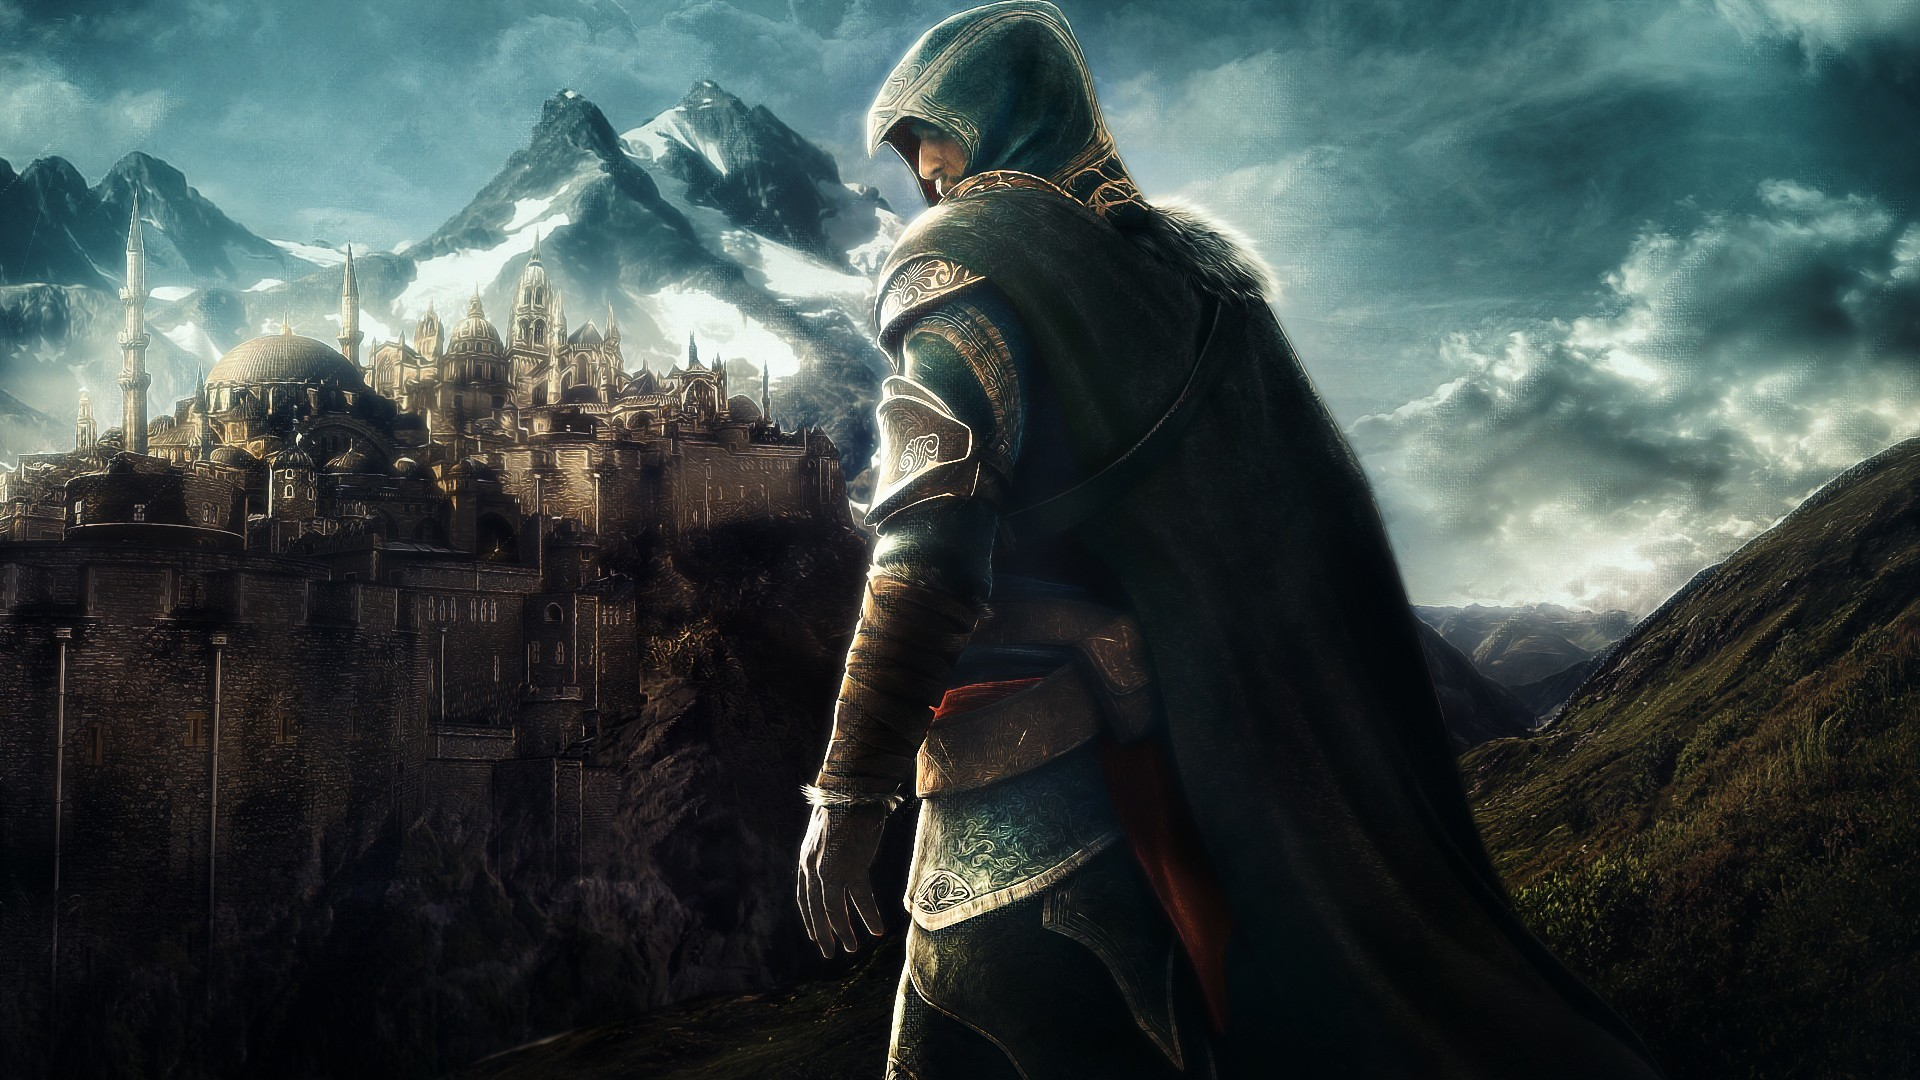 Video Games Wallpapers Part Album on Imgur 1920×1080 Epic Game Wallpapers  (41 Wallpapers